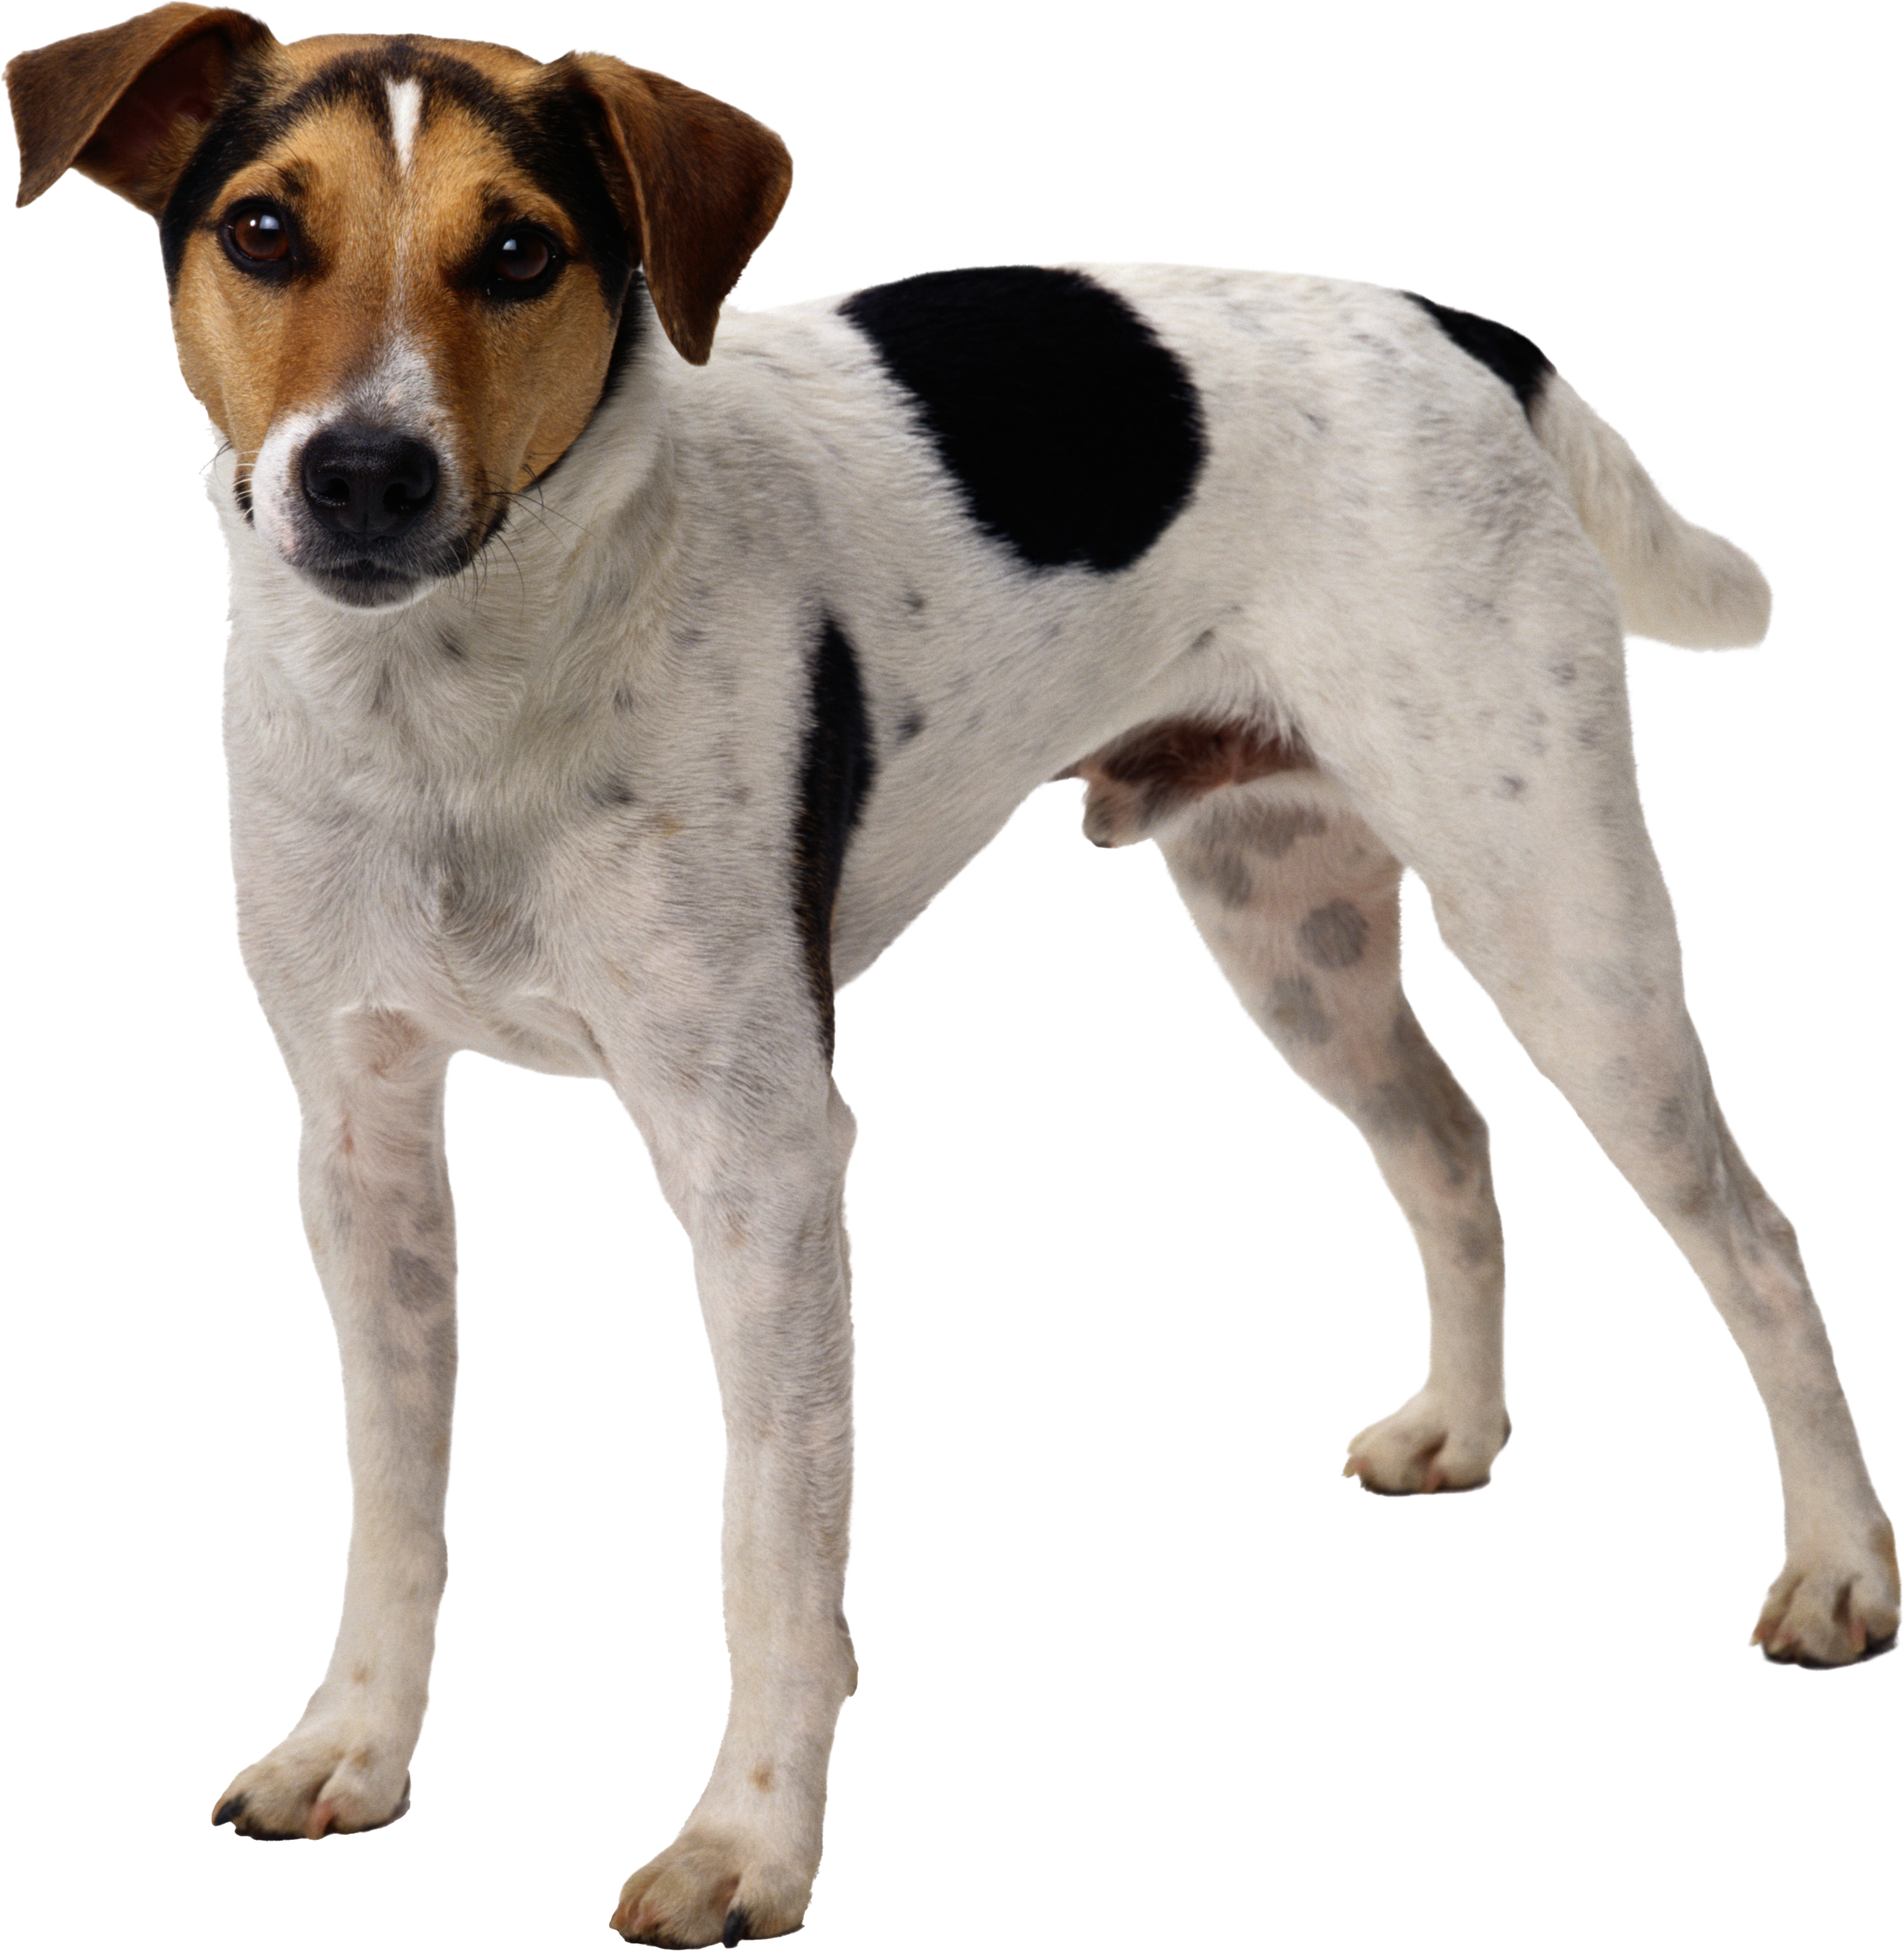 Dog png image, dogs, puppy pictures free download